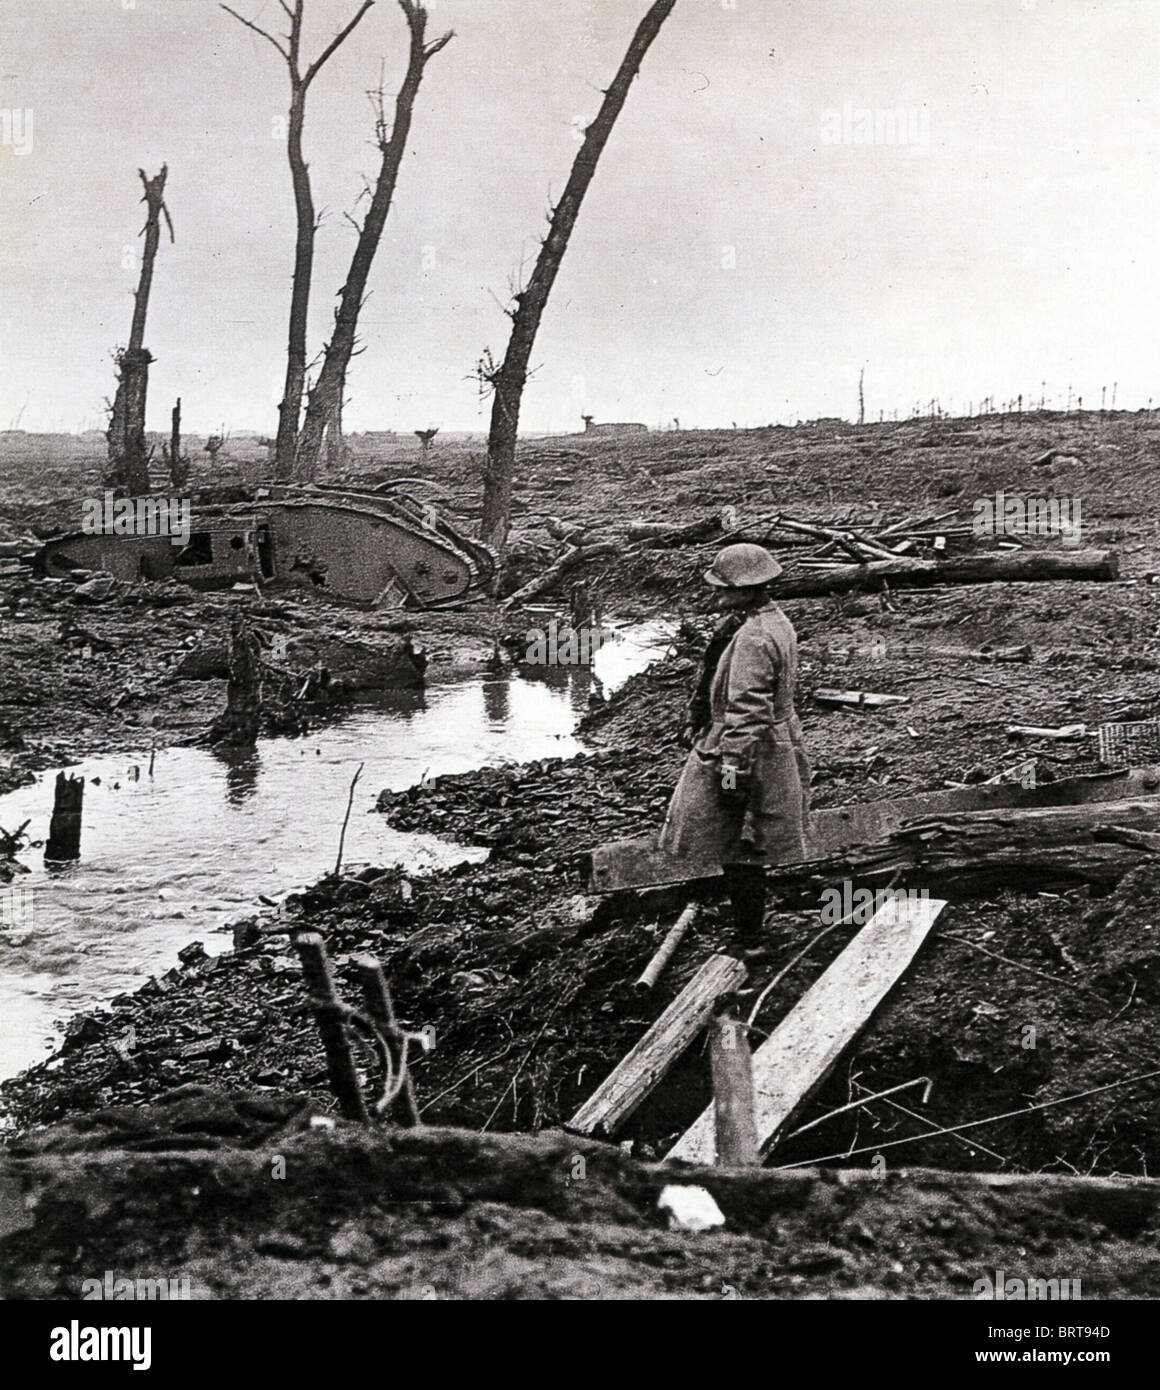 FIRST WORLD WAR - YPRES battlefield February 1918 - Stock Image